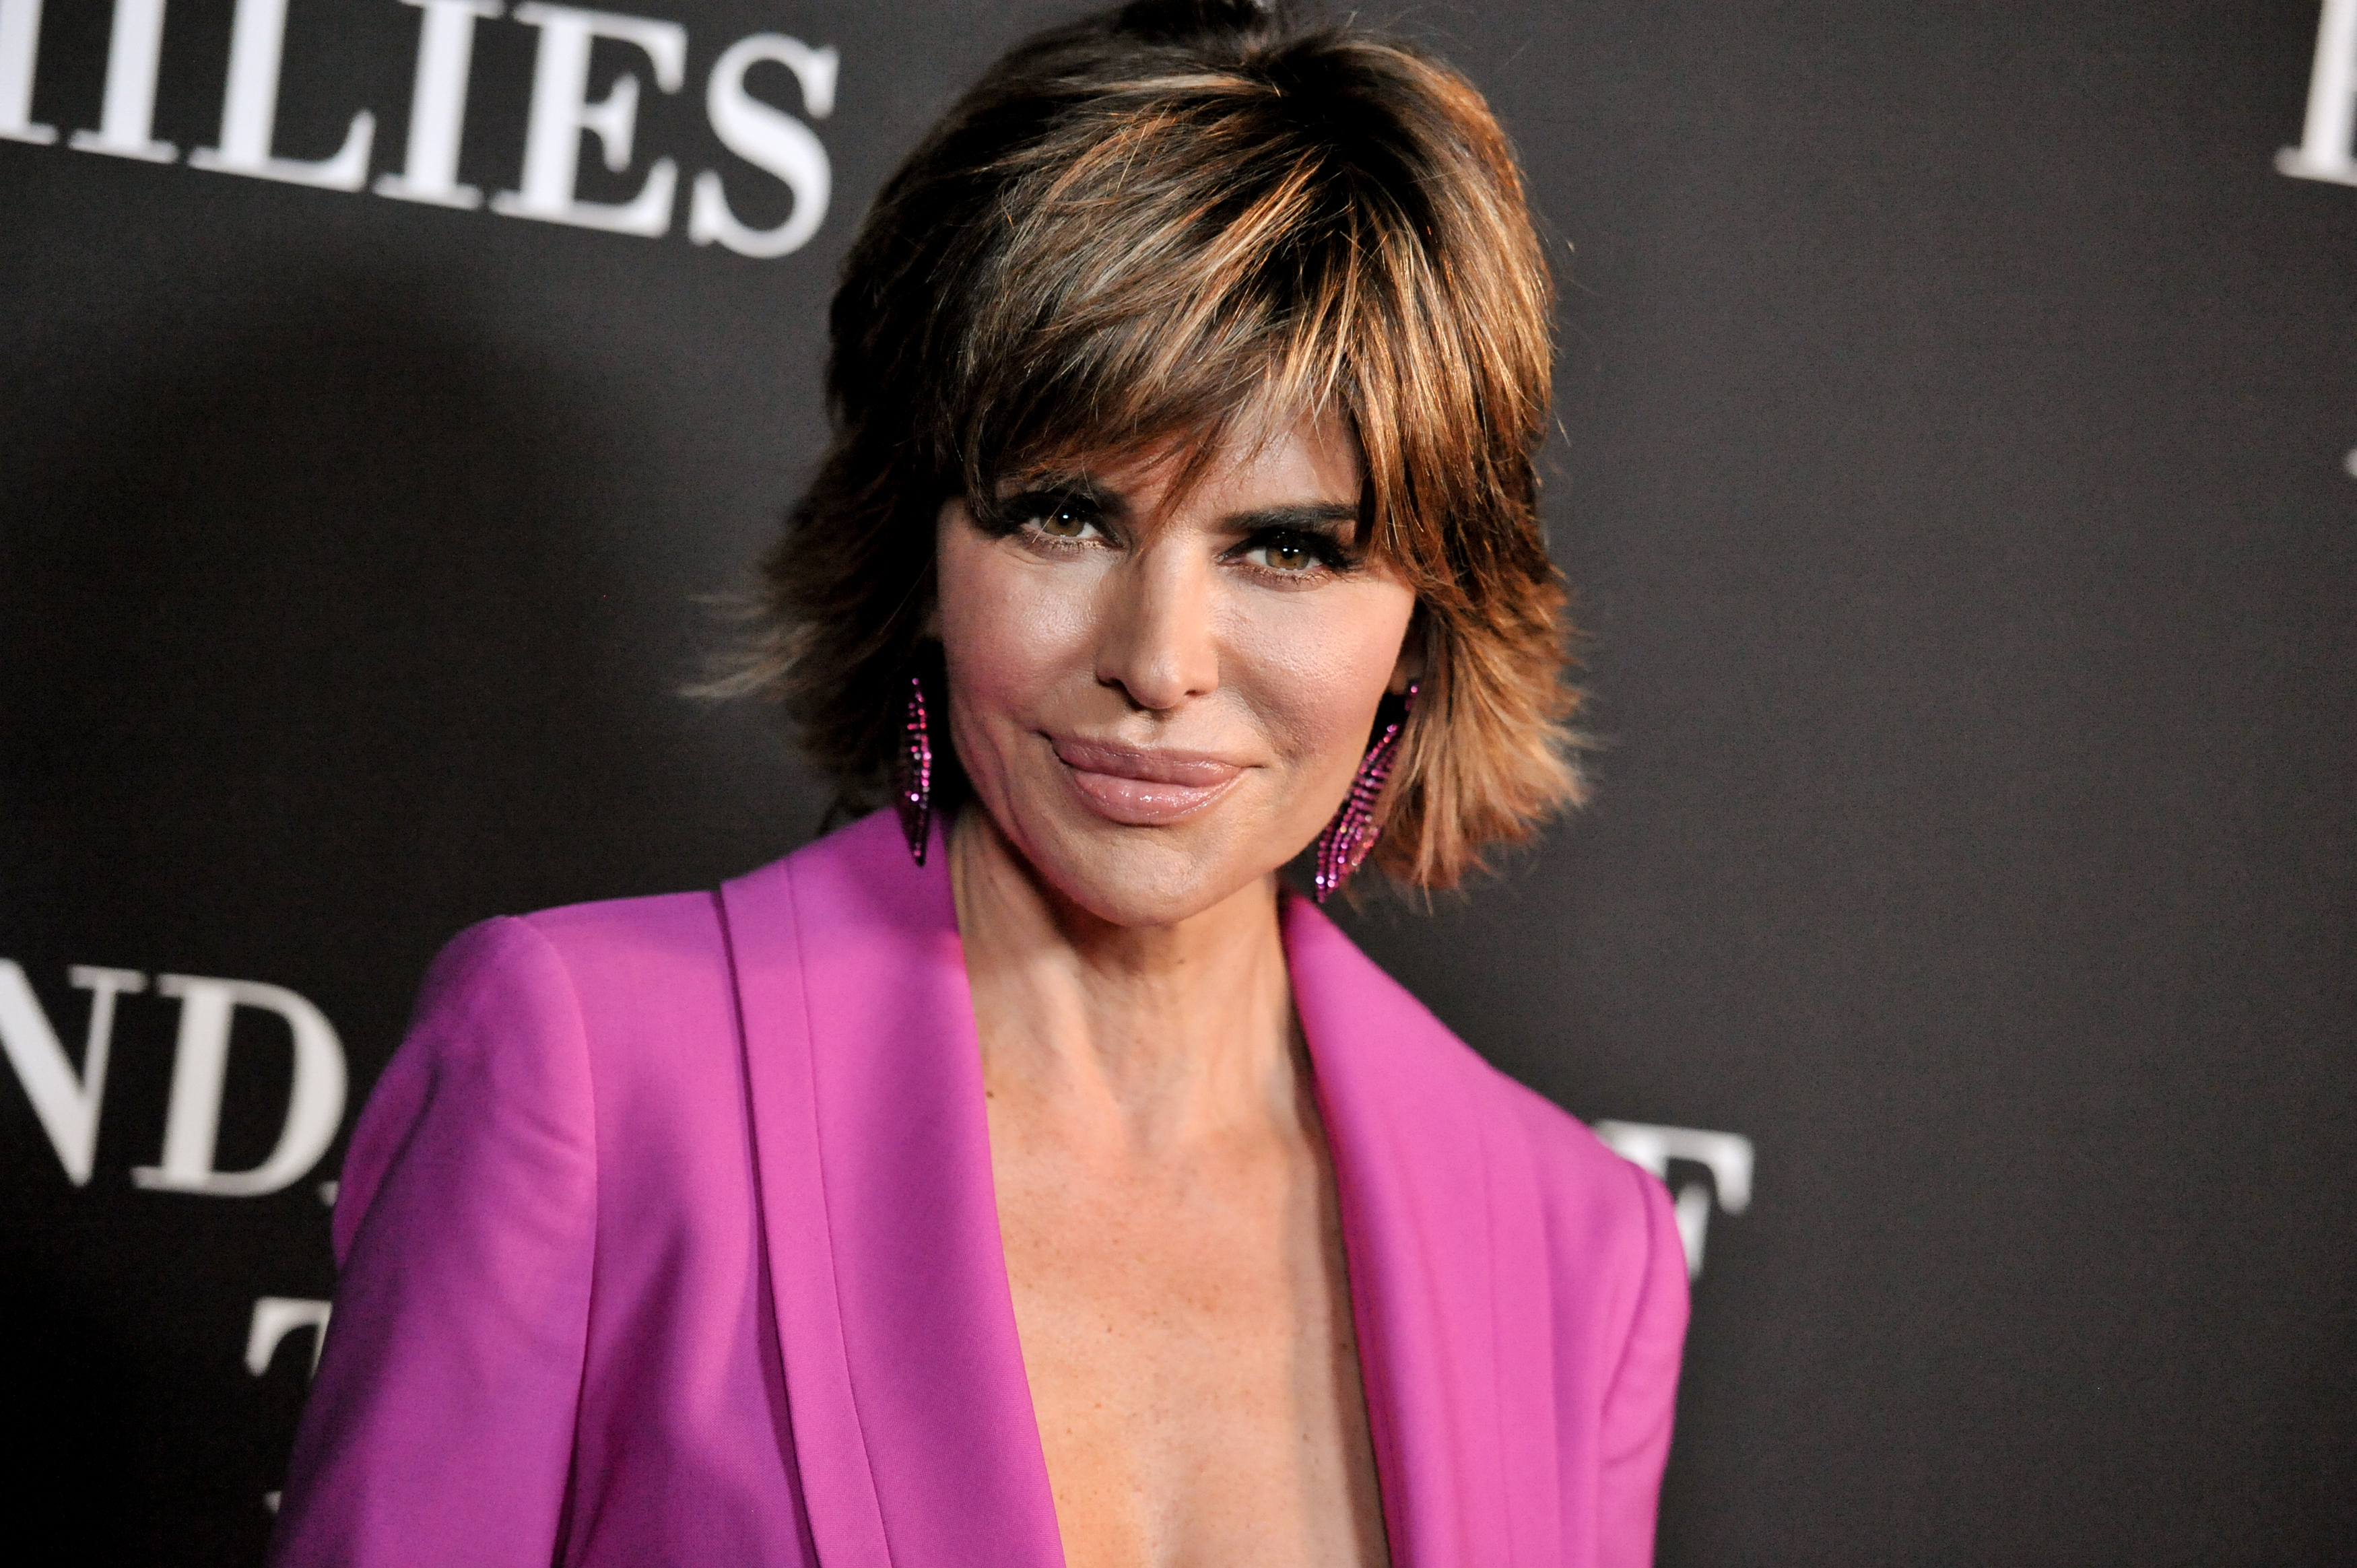 Lisa Rinna arrives at Elyse Walker's 10th Annual Pink Party on Saturday, Oct. 18, 2014, in Santa Monica, Calif. (Photo by Richard Shotwell/Invision/AP)